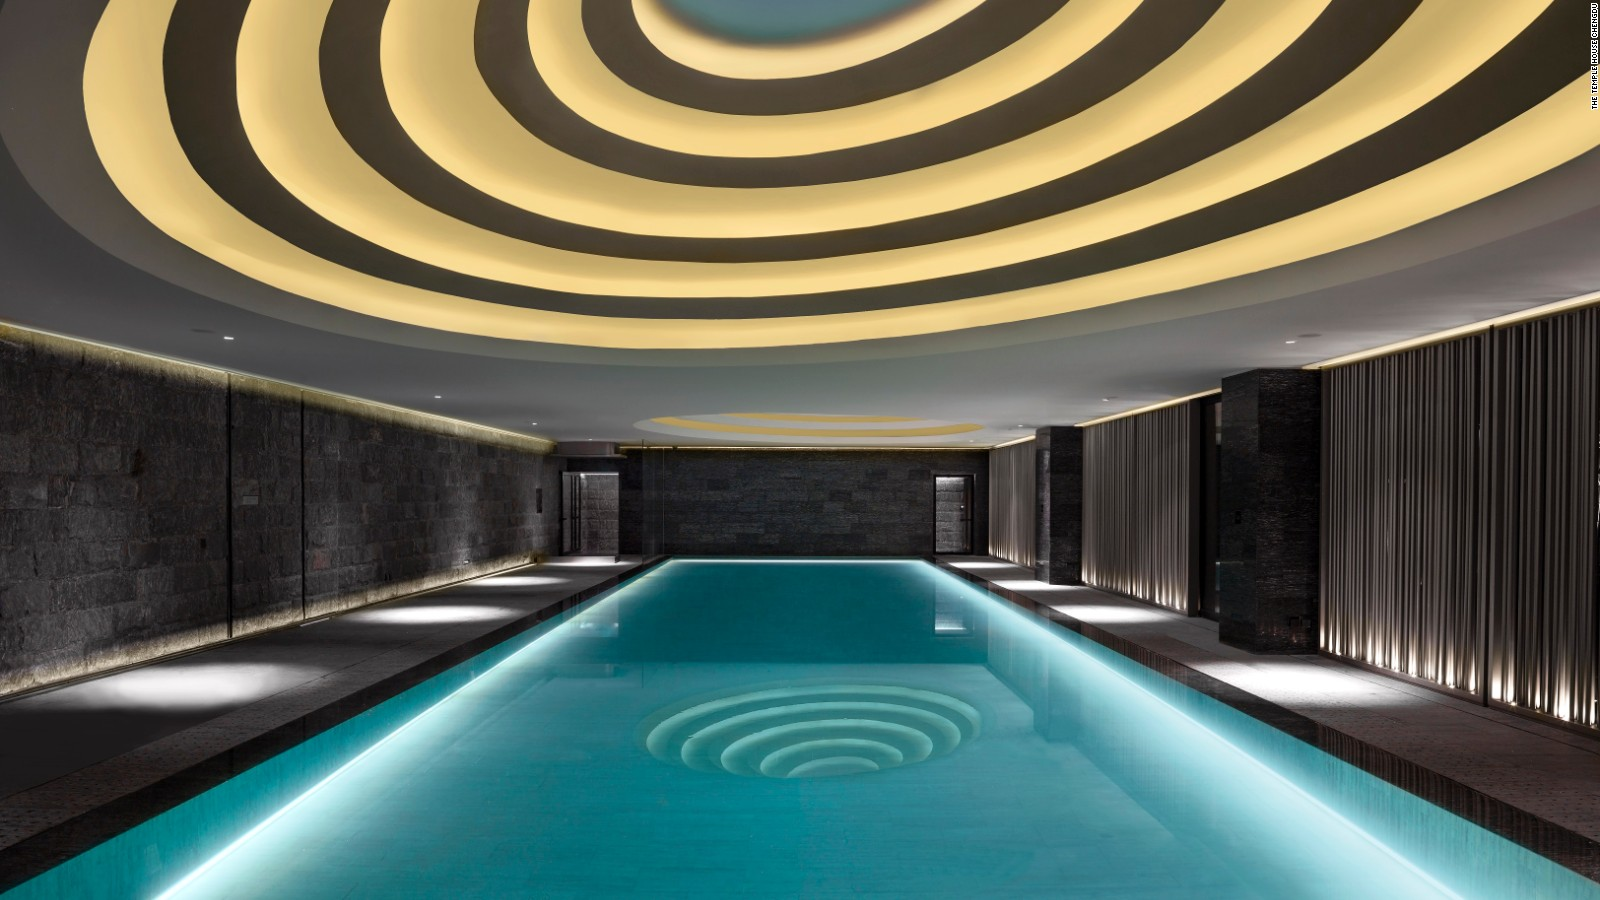 Luxury Swimming Pools: Where To Take An Expensive Dip | CNN Travel